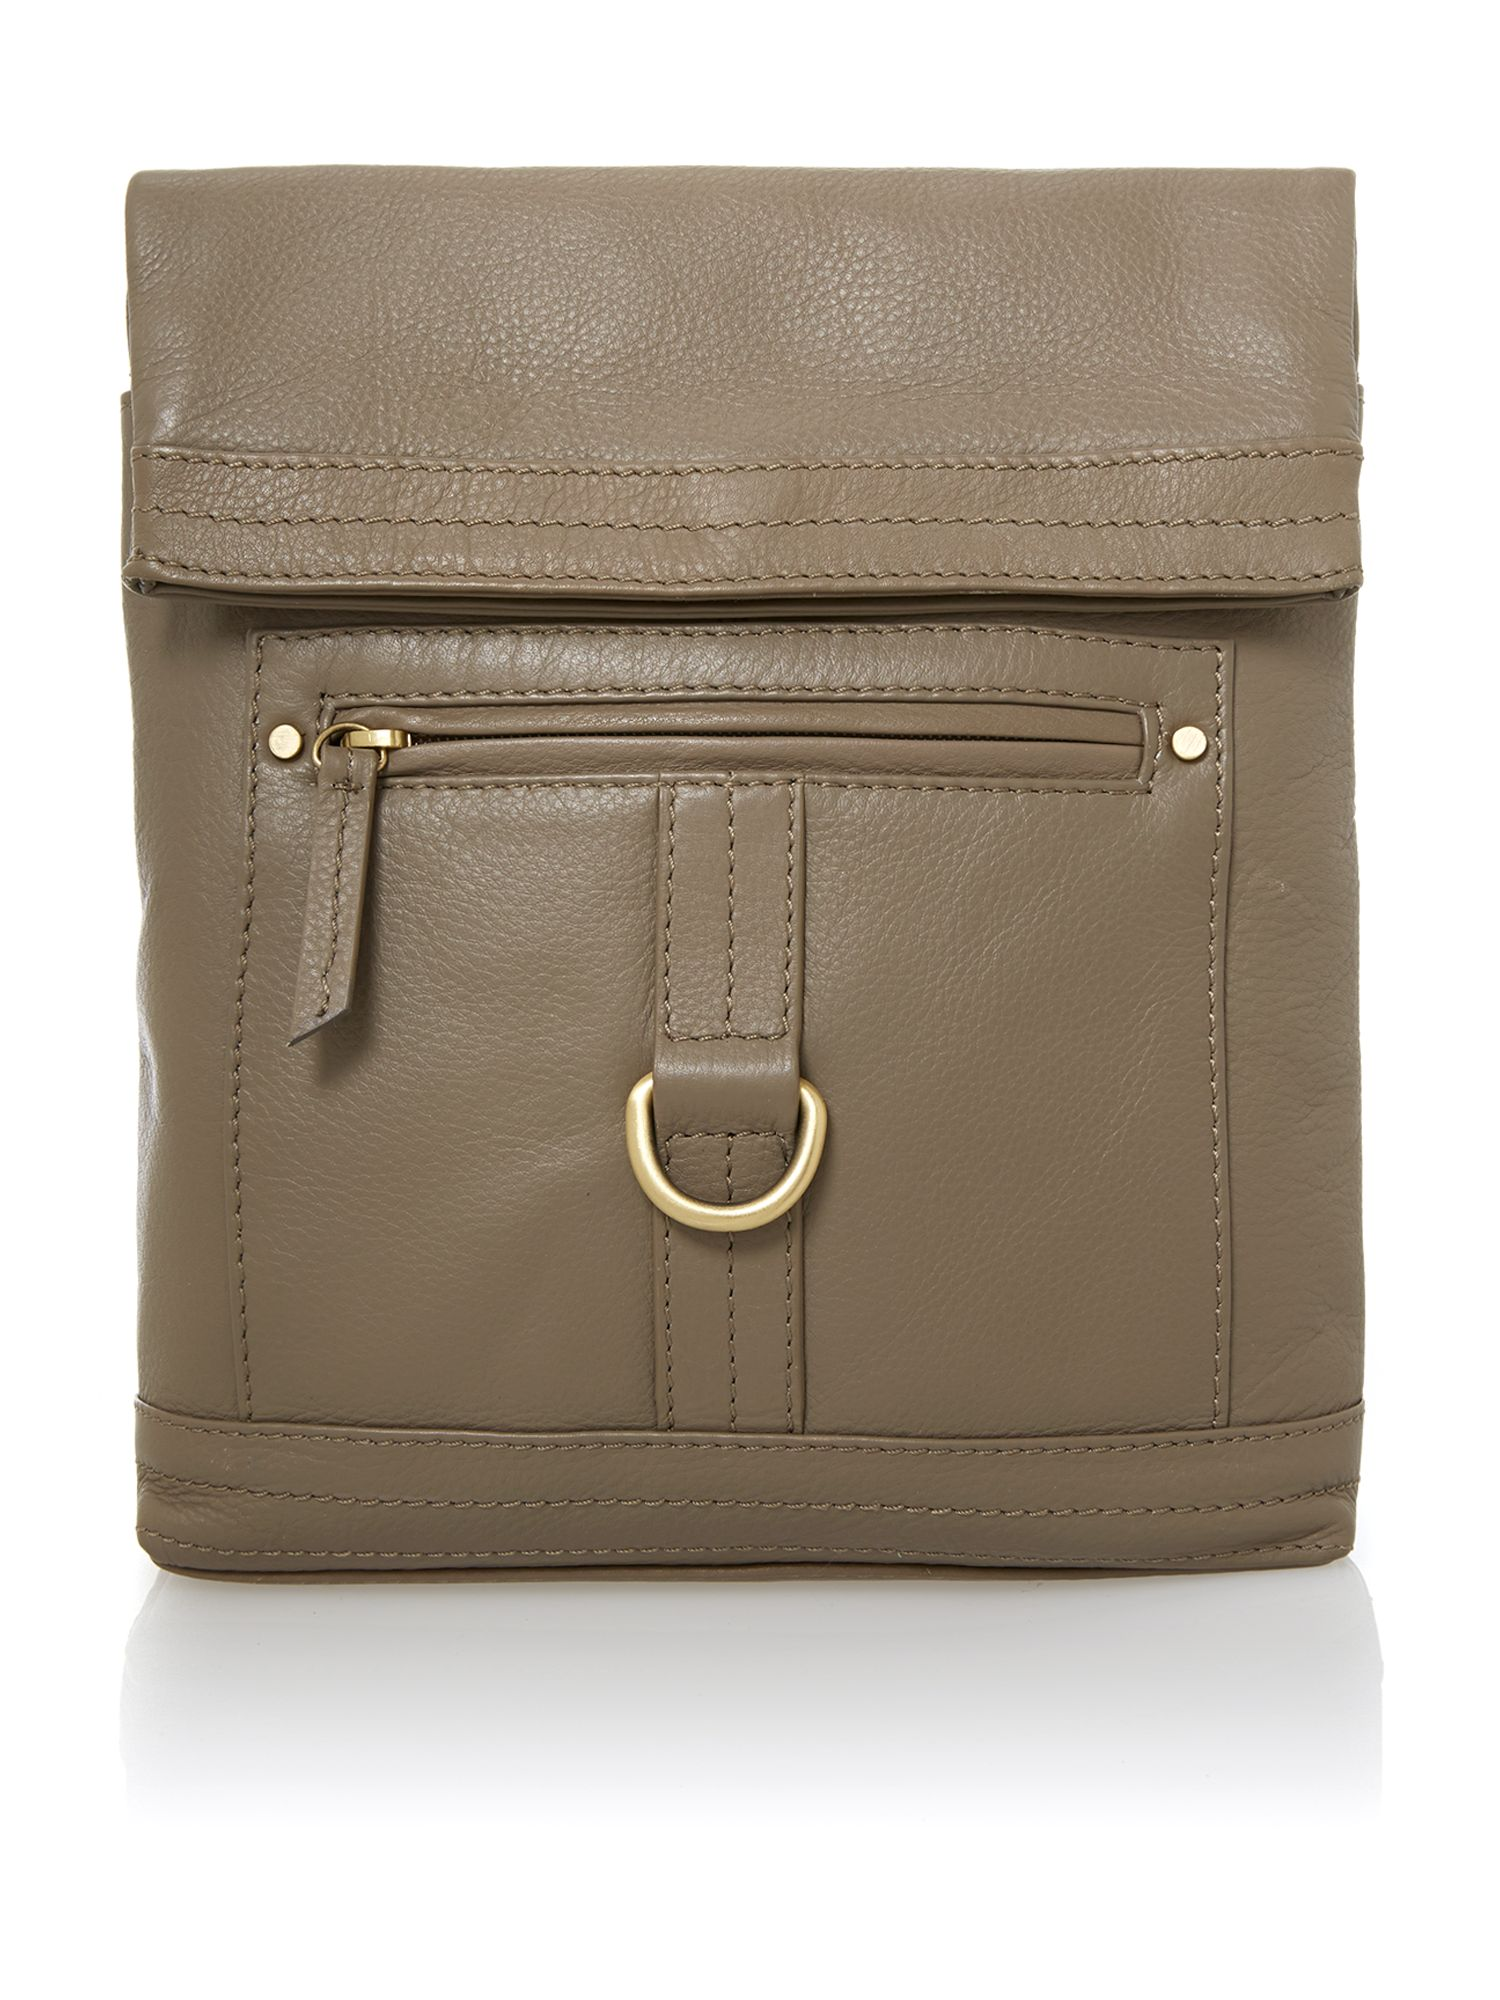 Kendal multi zip messenger handbag